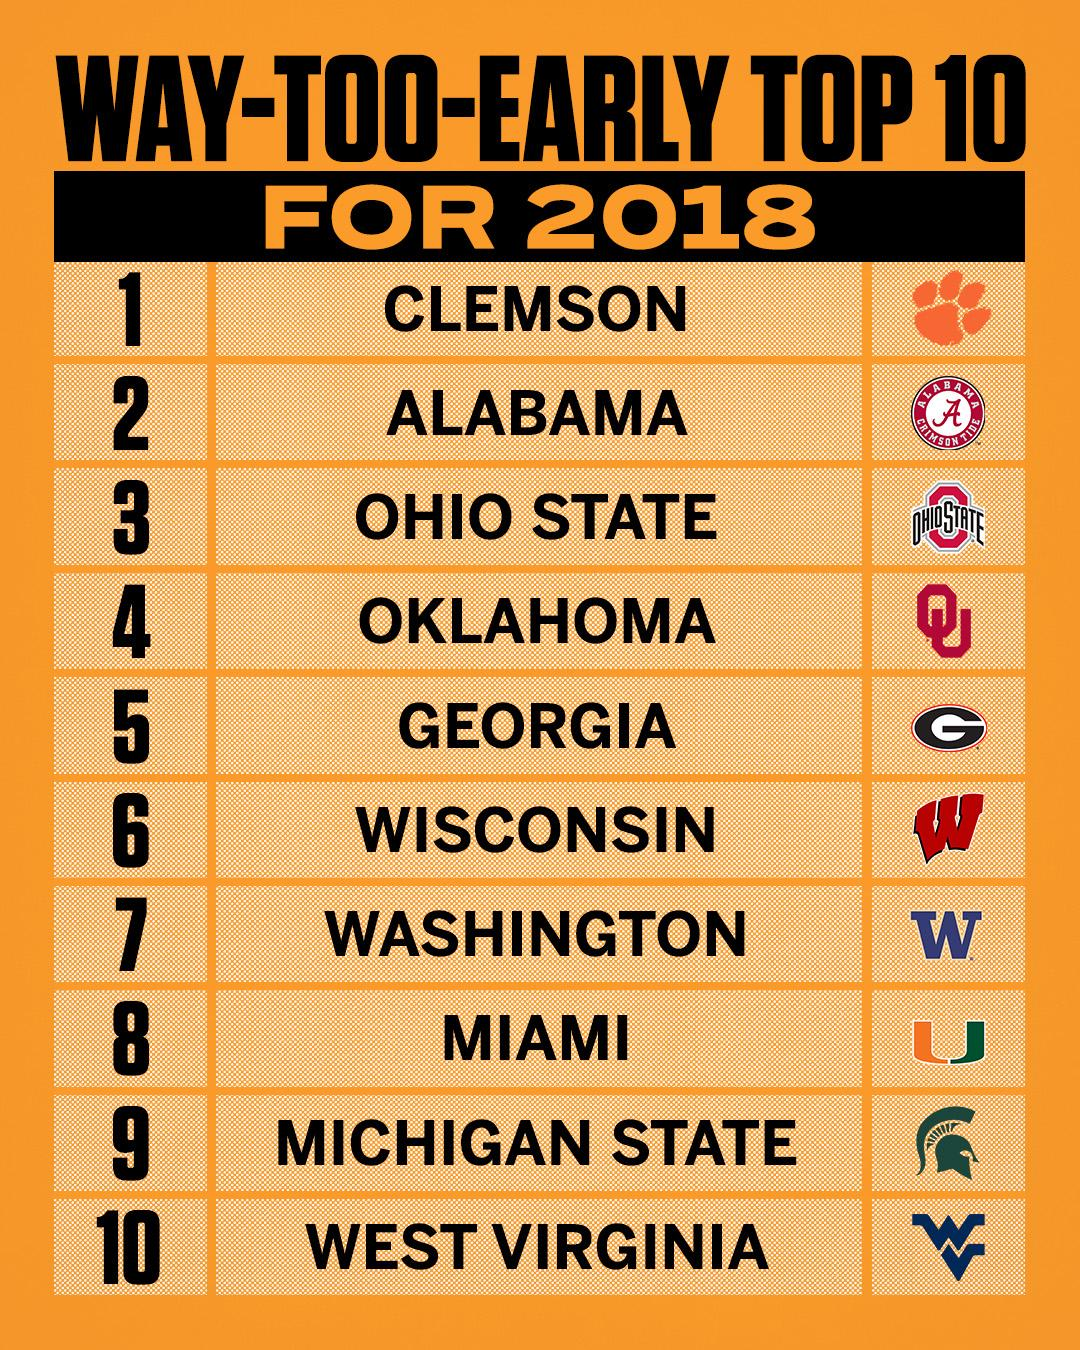 There's a new No. 1 in our way-too-early college football top 10. https://t.co/KAQADefup6